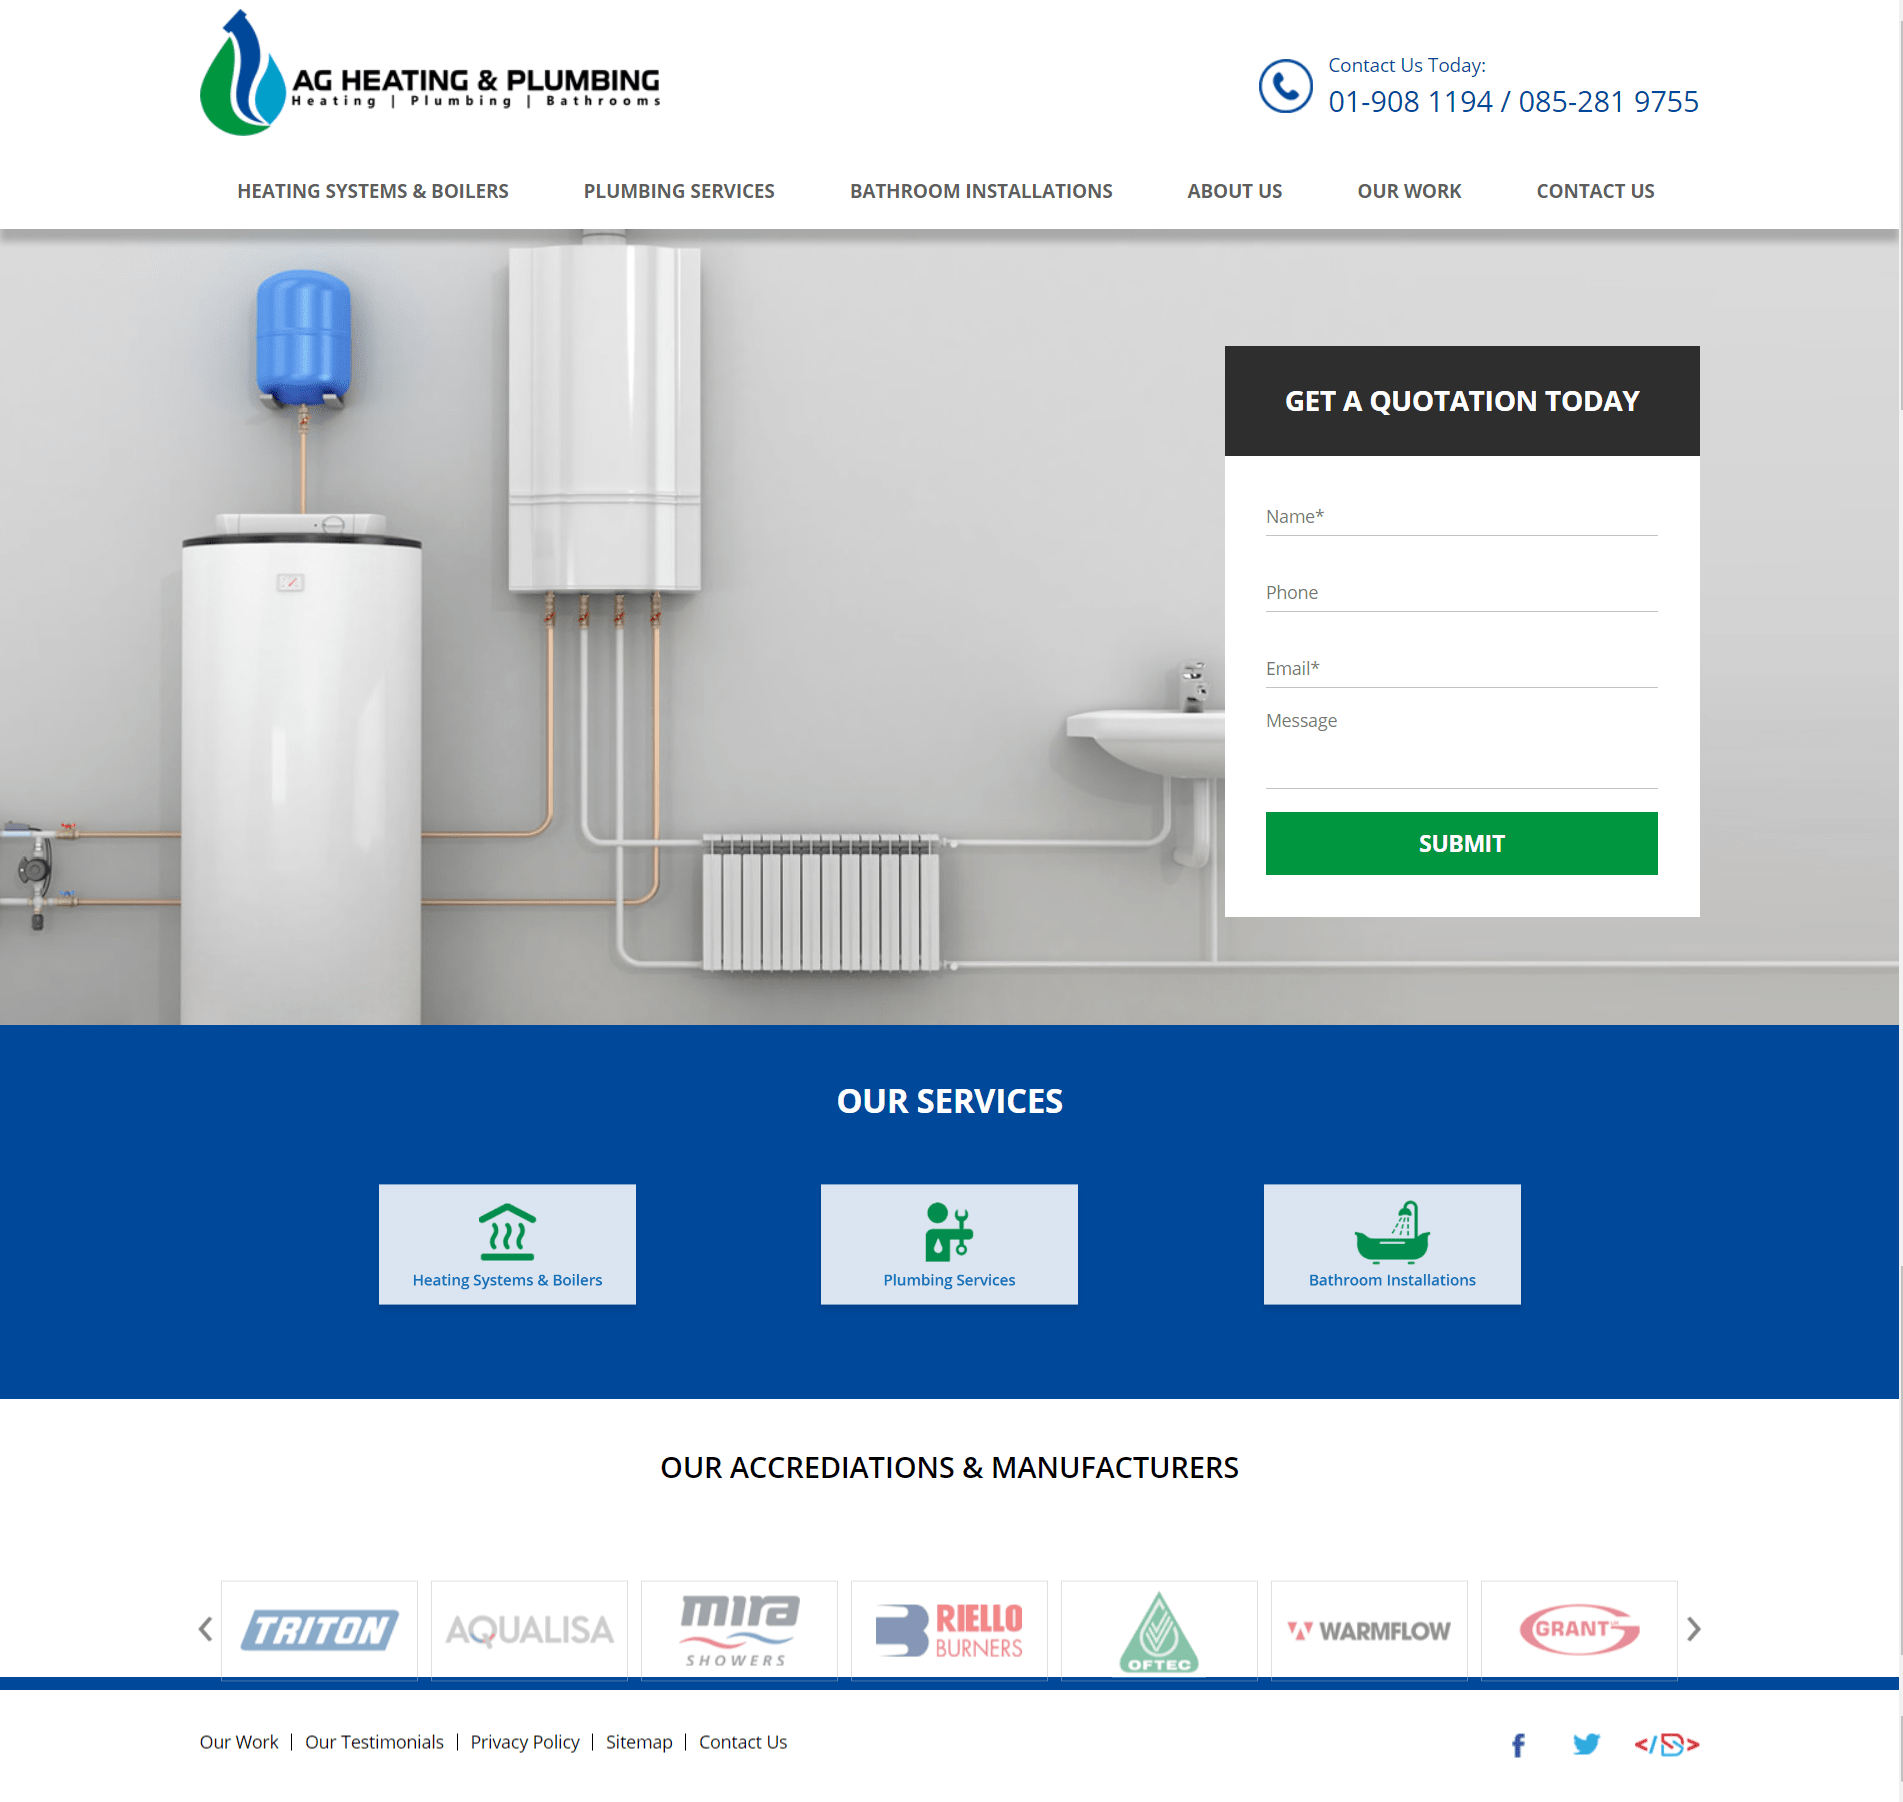 AG Heating & Plumbing